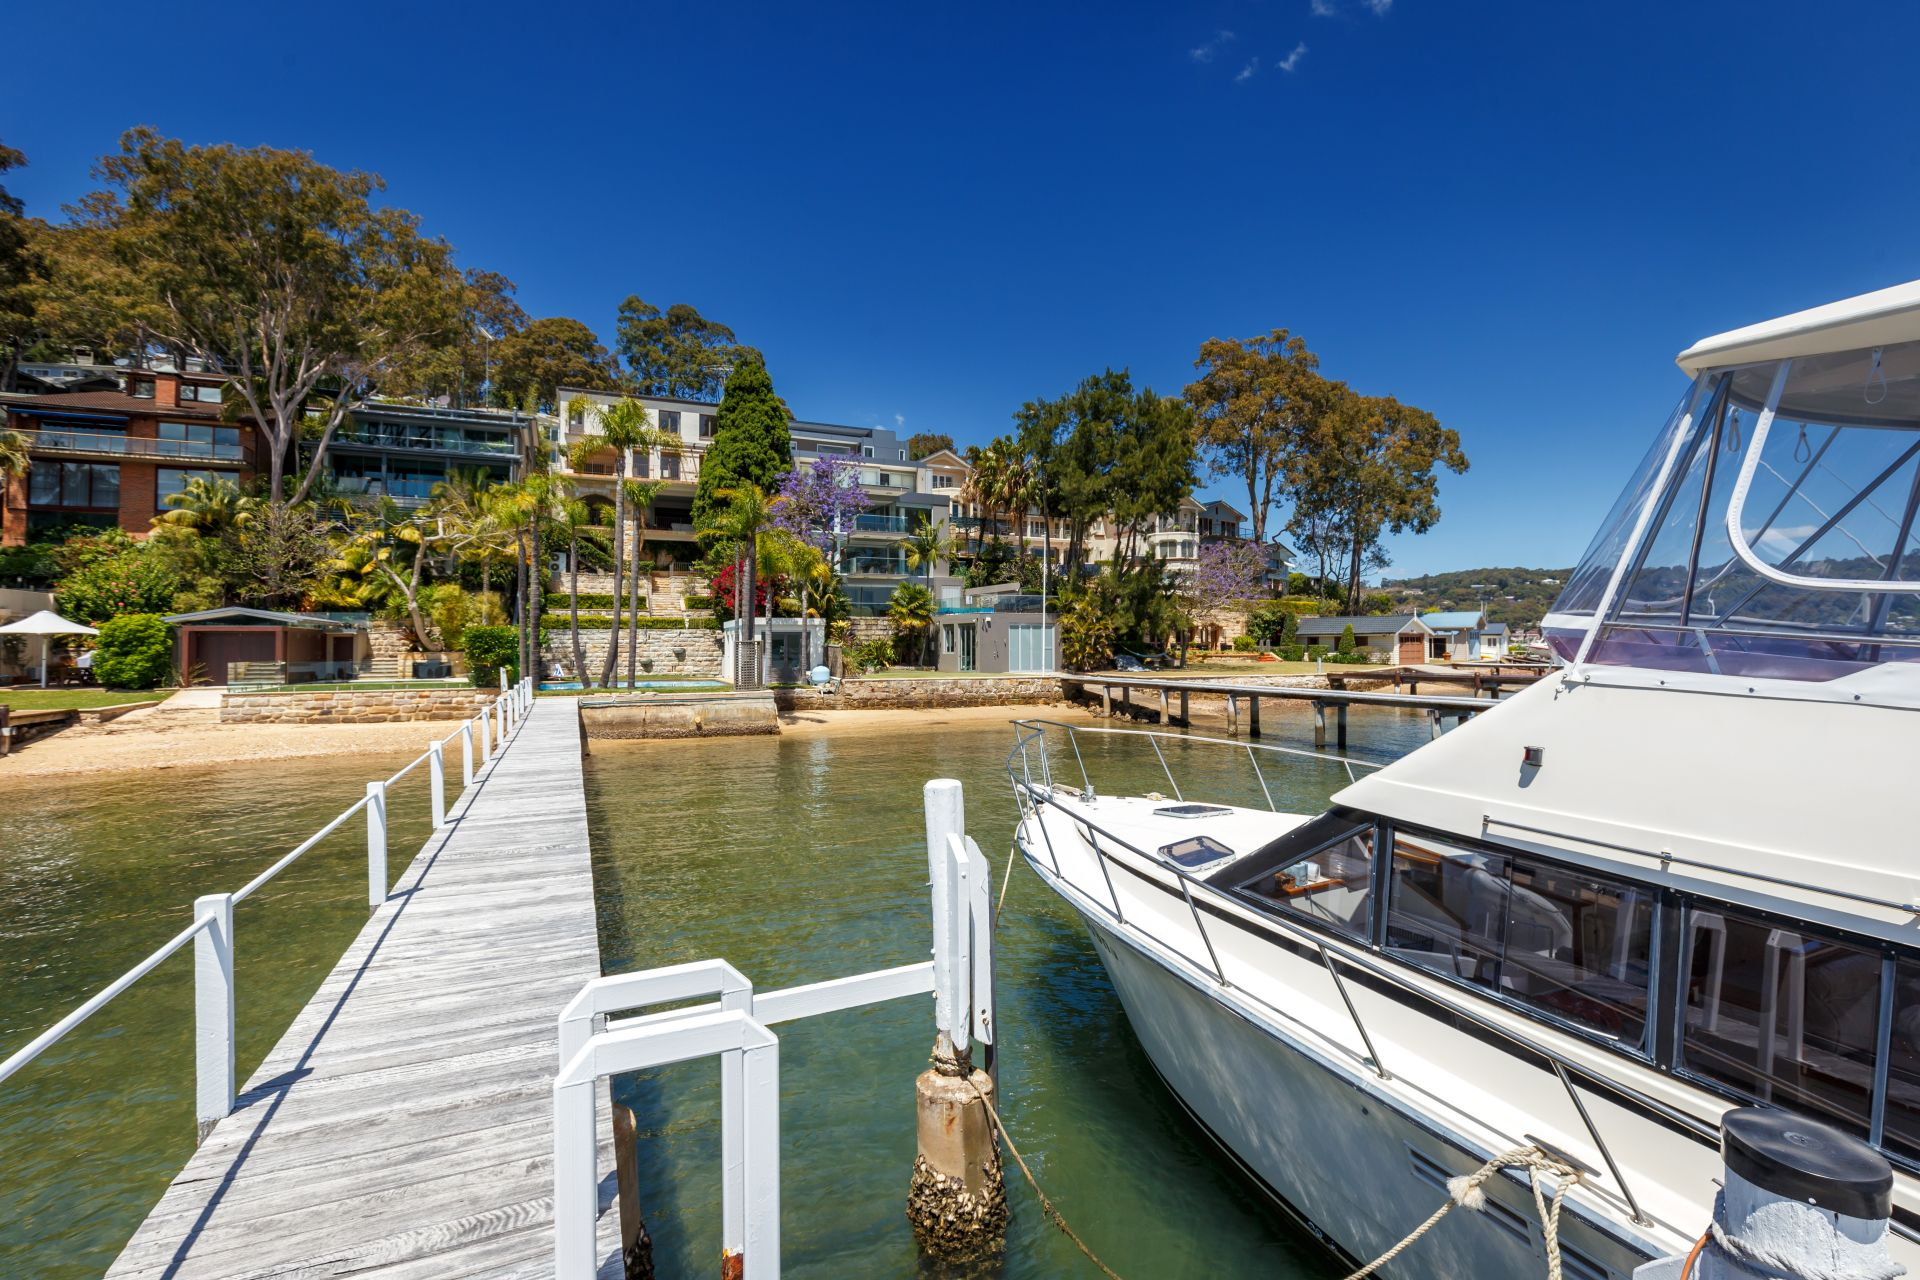 Additional photo for property listing at 'La Dolce Vita' - Mediterranean-inspired waterfront 98 Prince Alfred Parade Newport, 新南威尔士,2106 澳大利亚